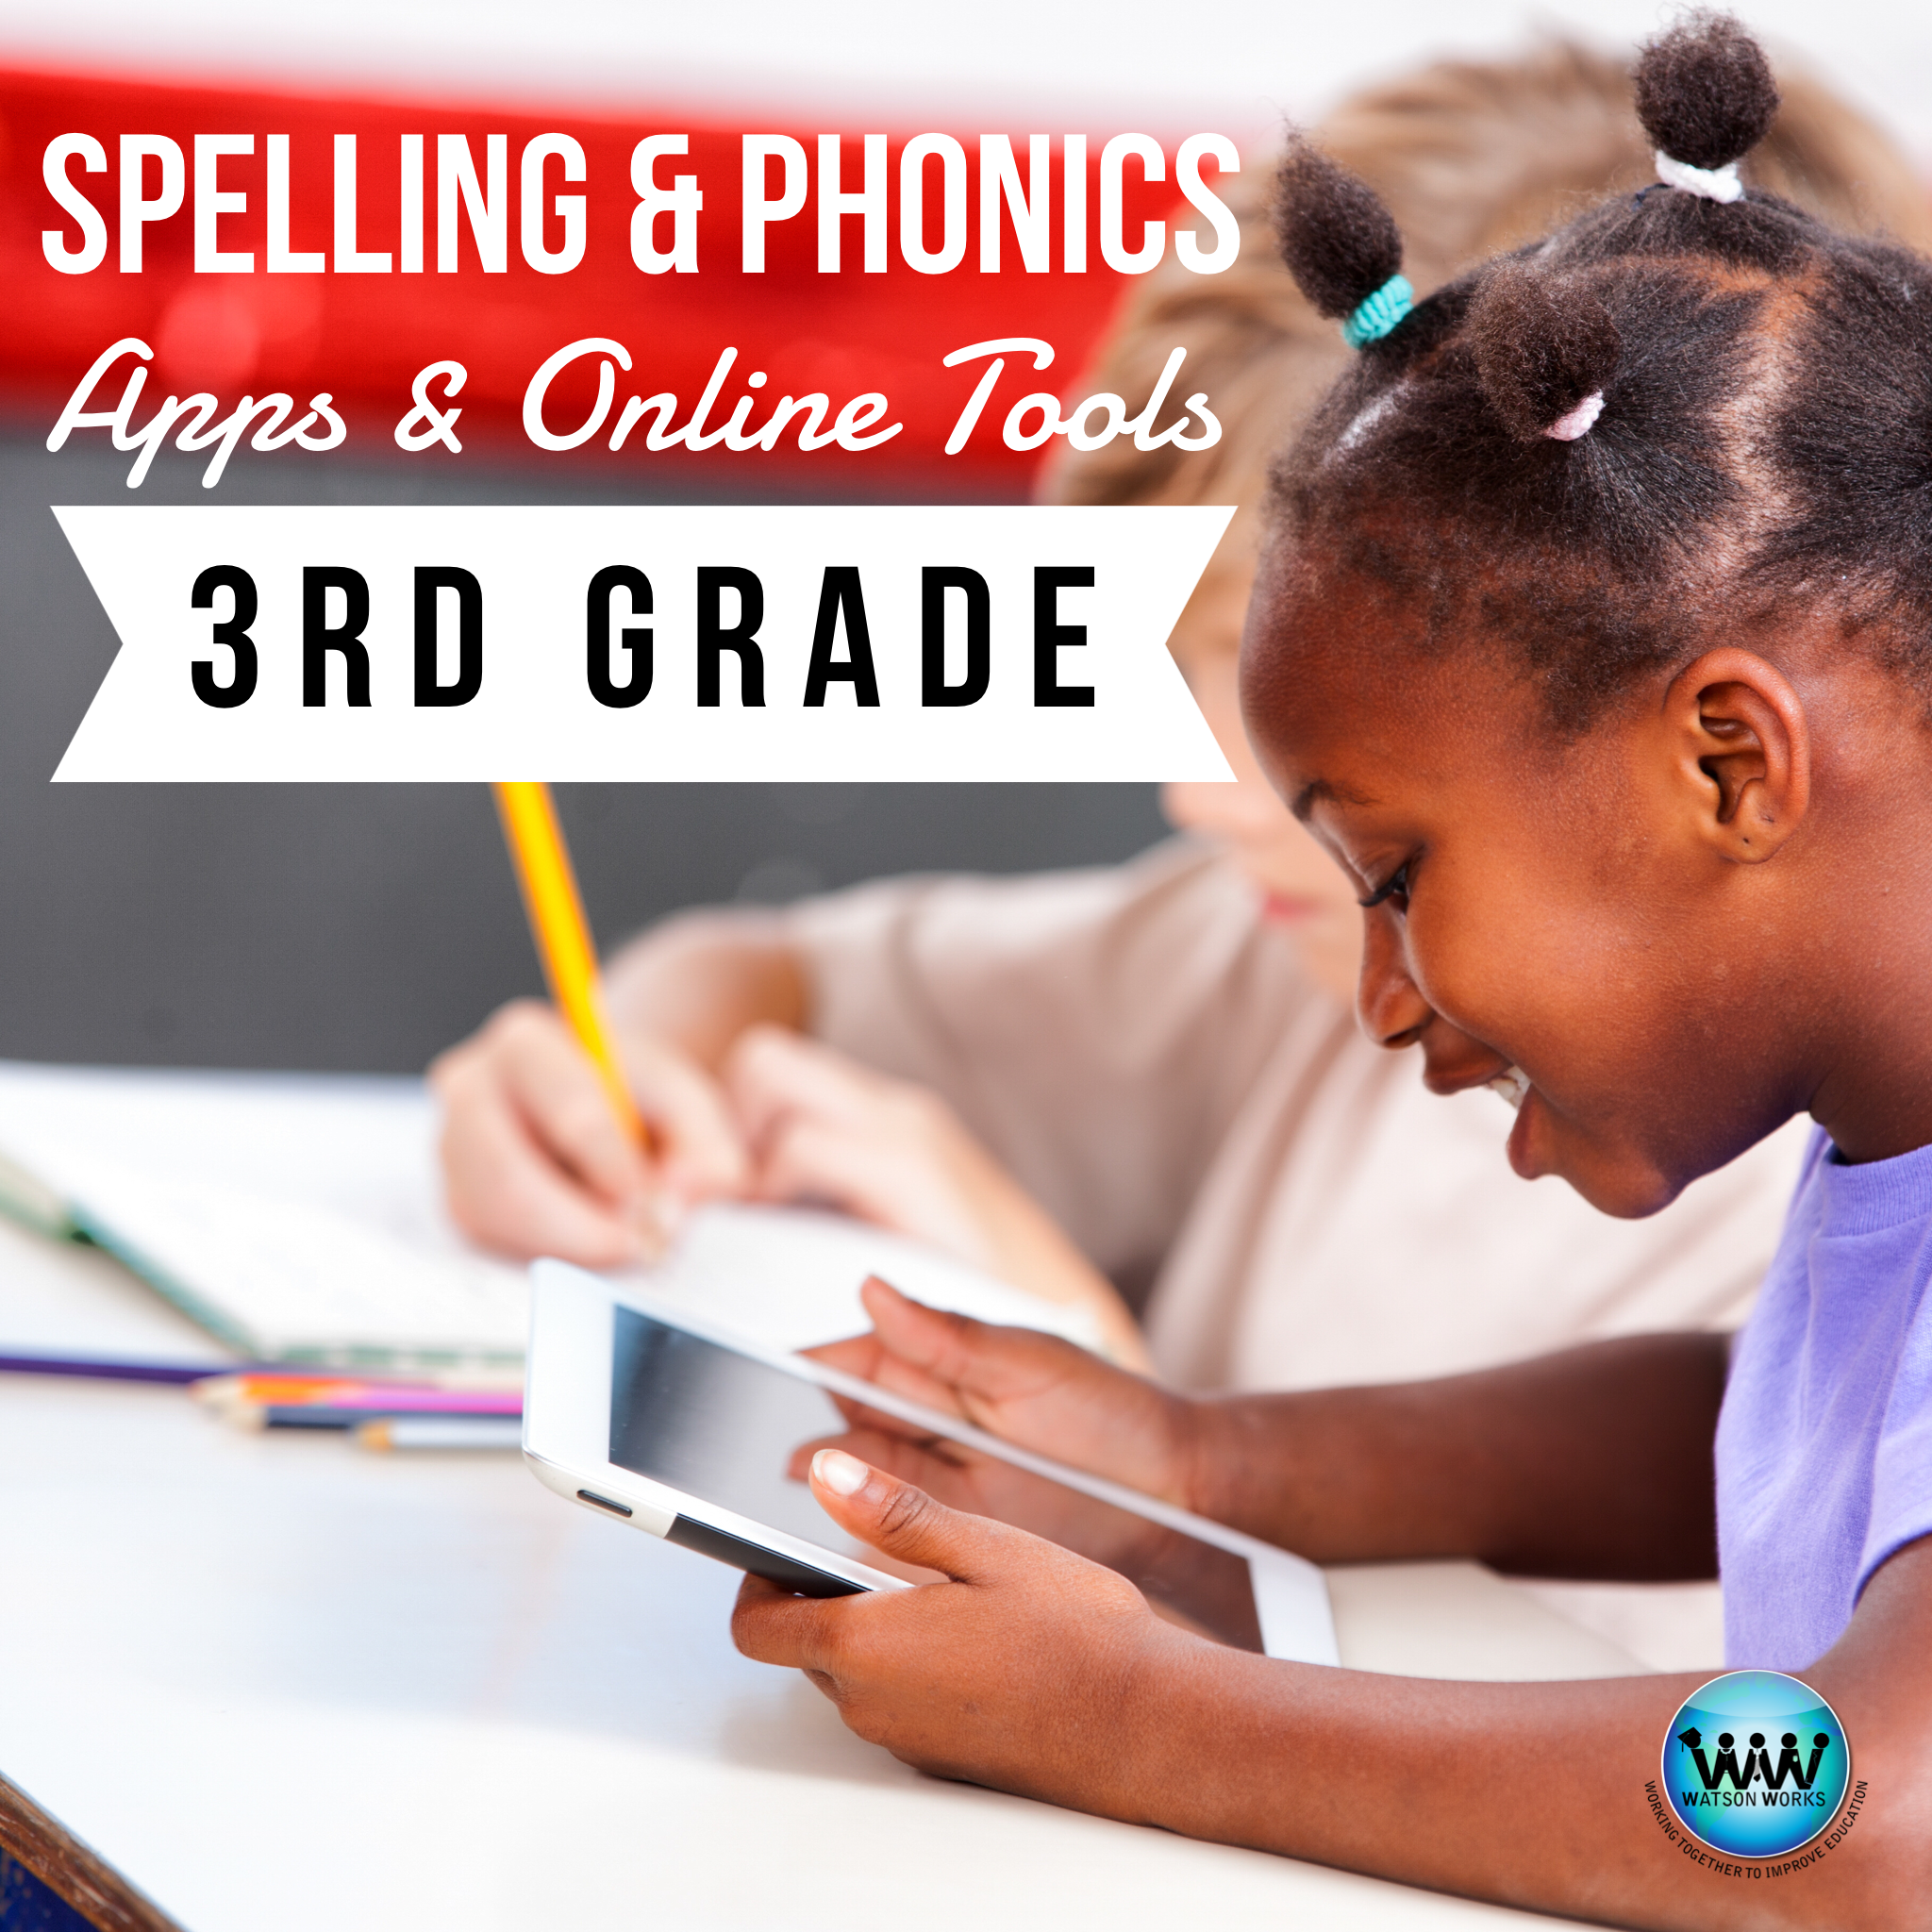 3rd Grade Spelling Amp Phonics Apps Online Tools